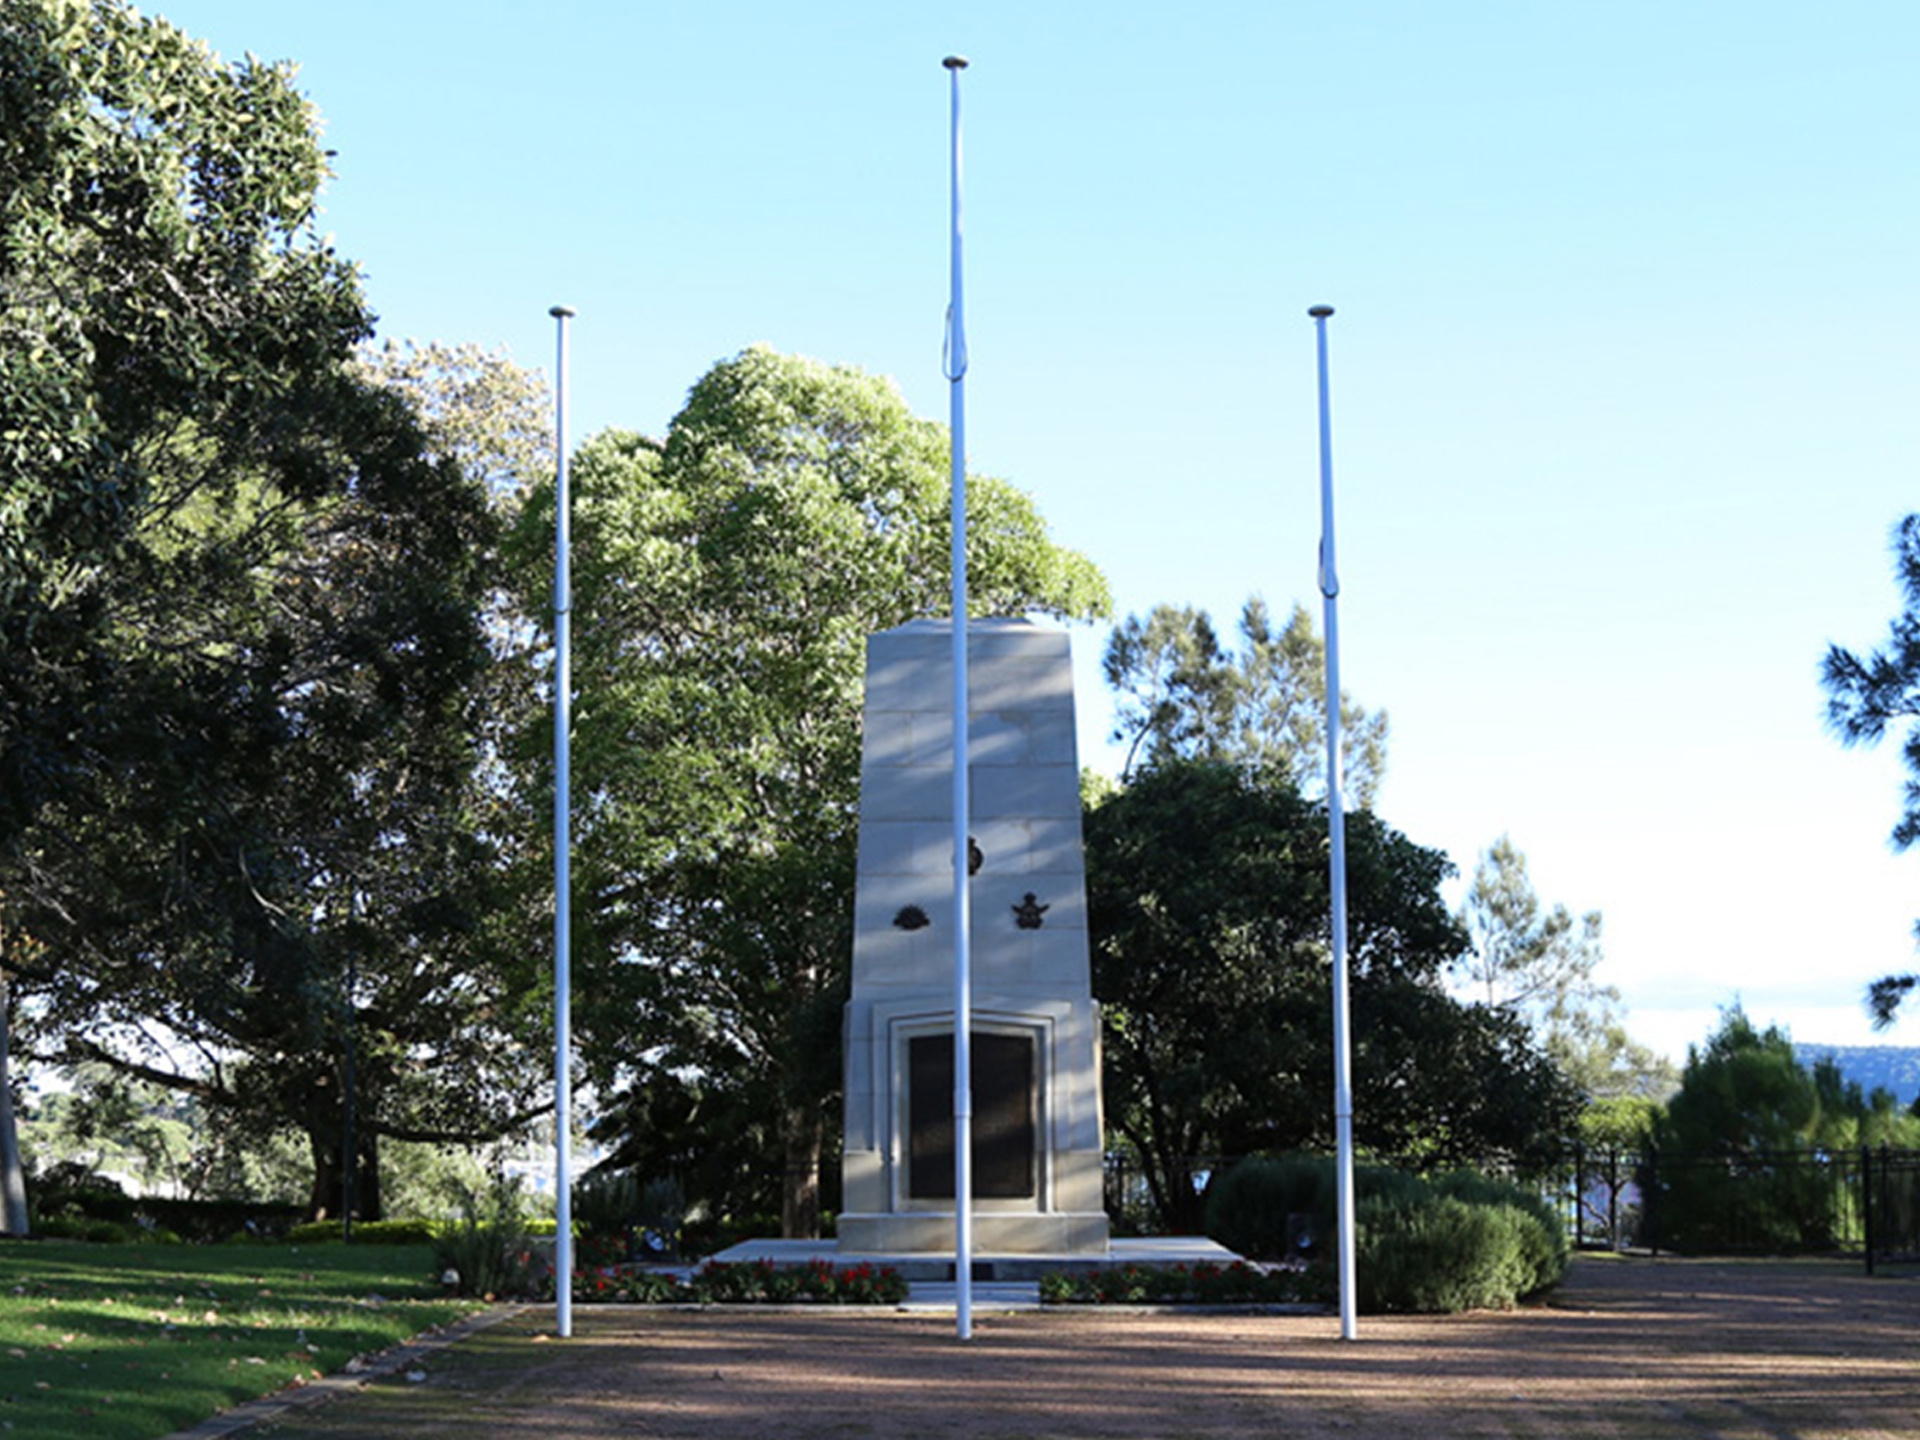 Gosford Cenotaph in its setting